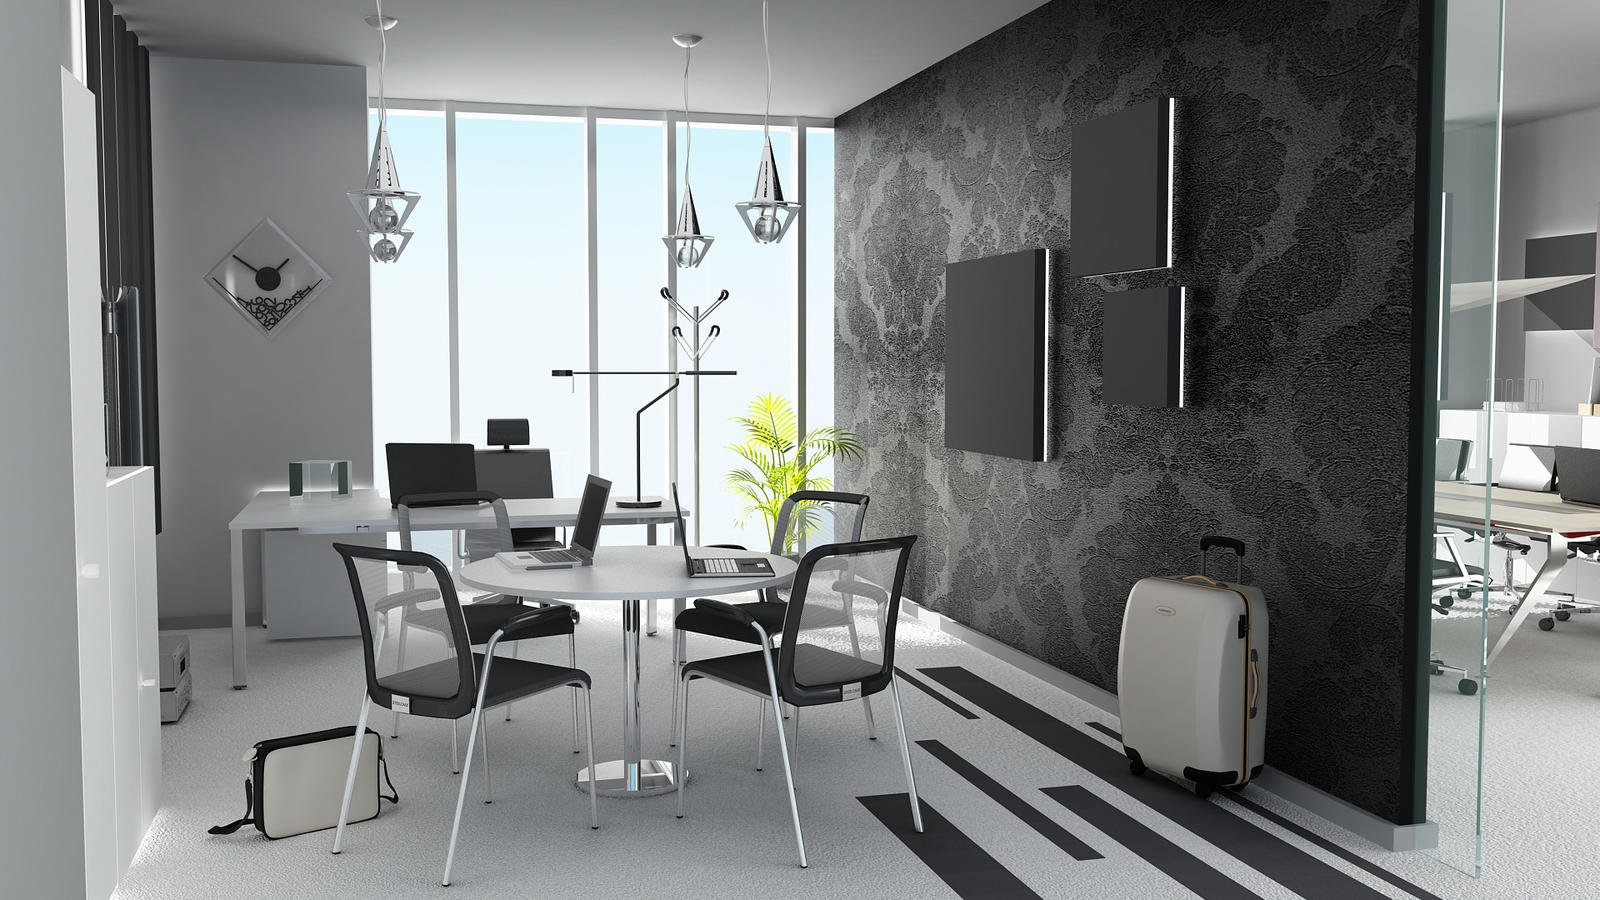 Black And White Office By Shyntakun On DeviantArt